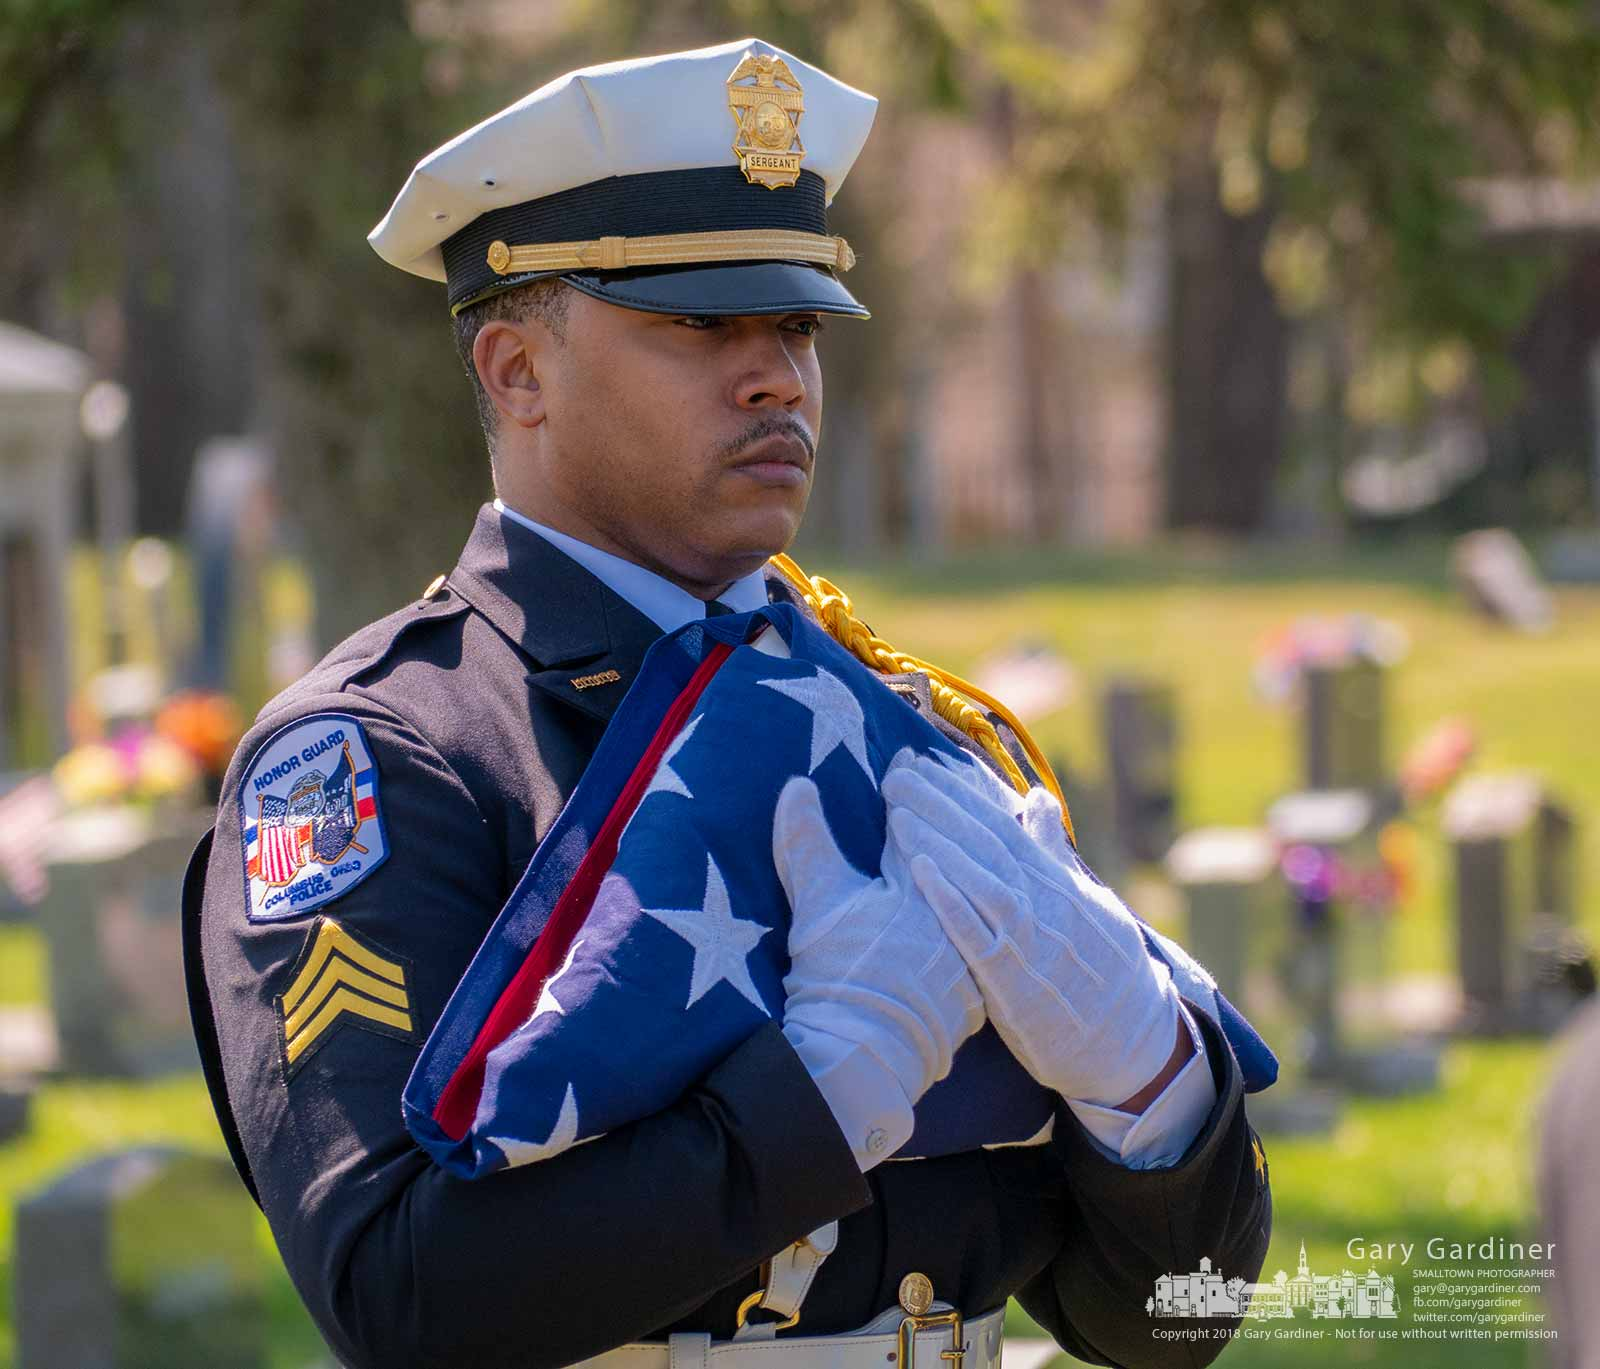 A Columbus Police Honor Guard officer carries a folded flag to present it to the family of a retired officer who was buried Thursday at Blendon Central Cemetery. My Final Photo for April 5, 2018.